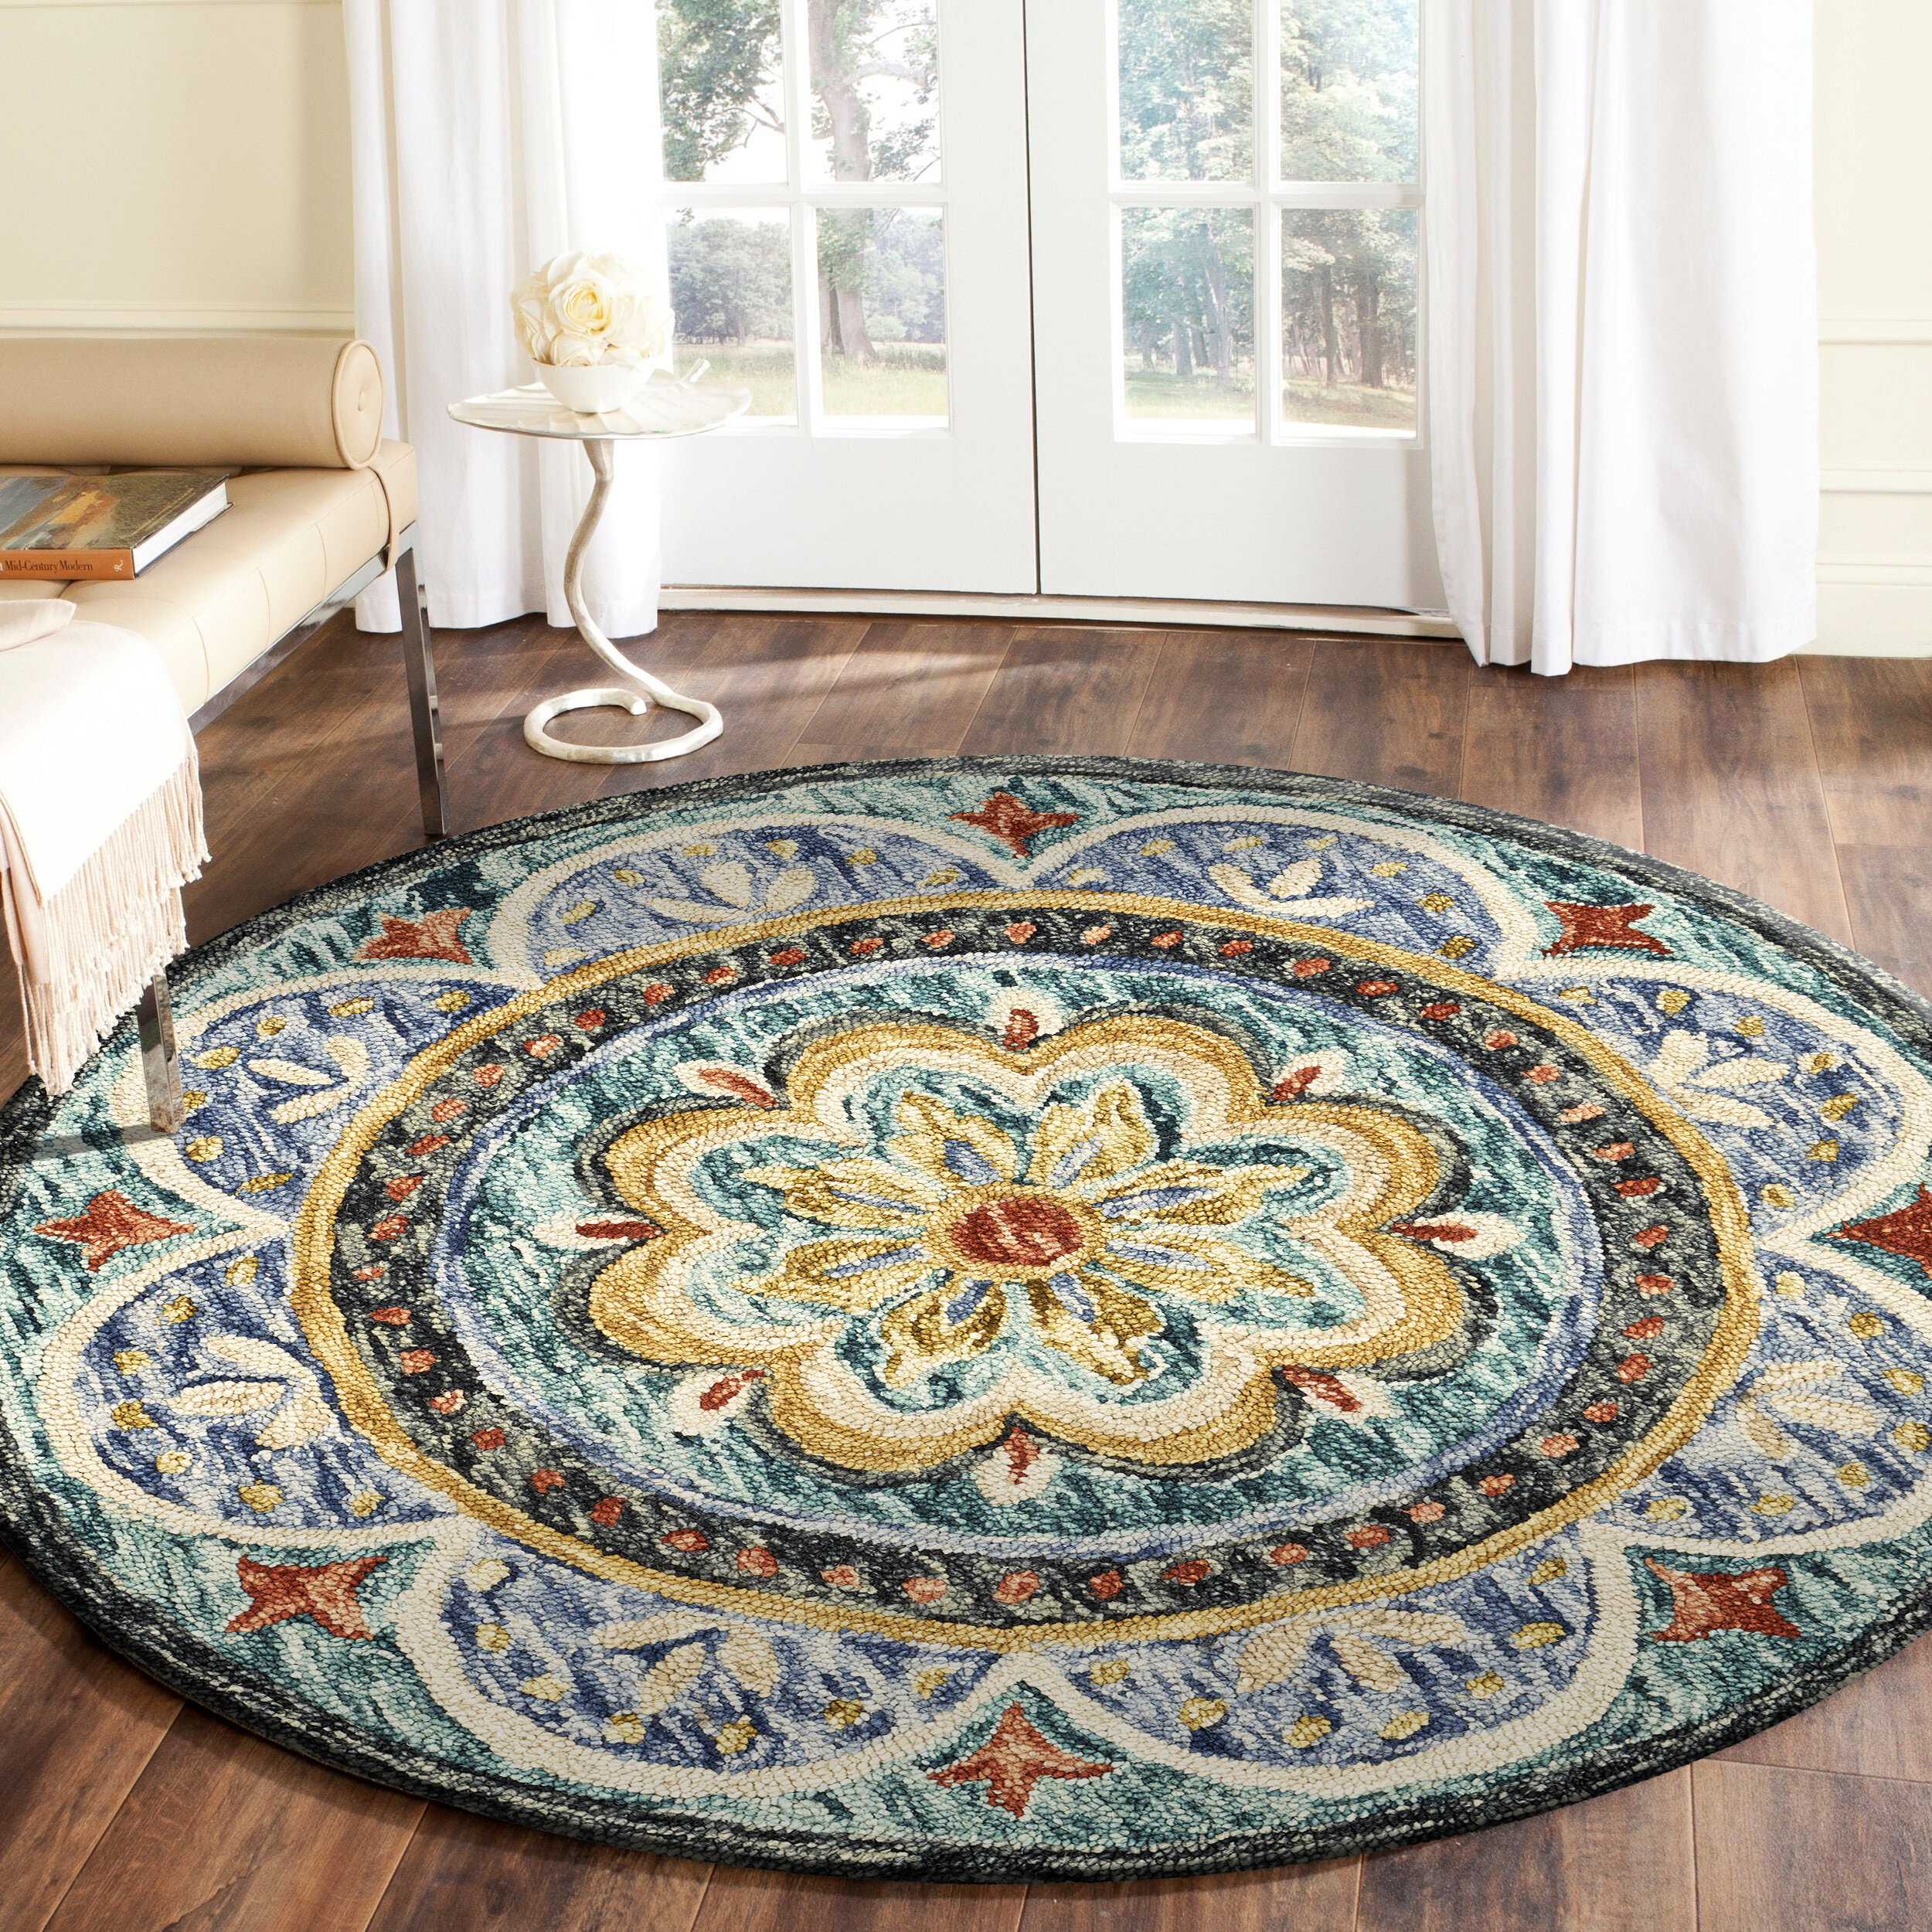 Canora Grey Round Padula Floral Hand Tufted Wool Brown Blue Beige Area Rug Reviews Wayfair